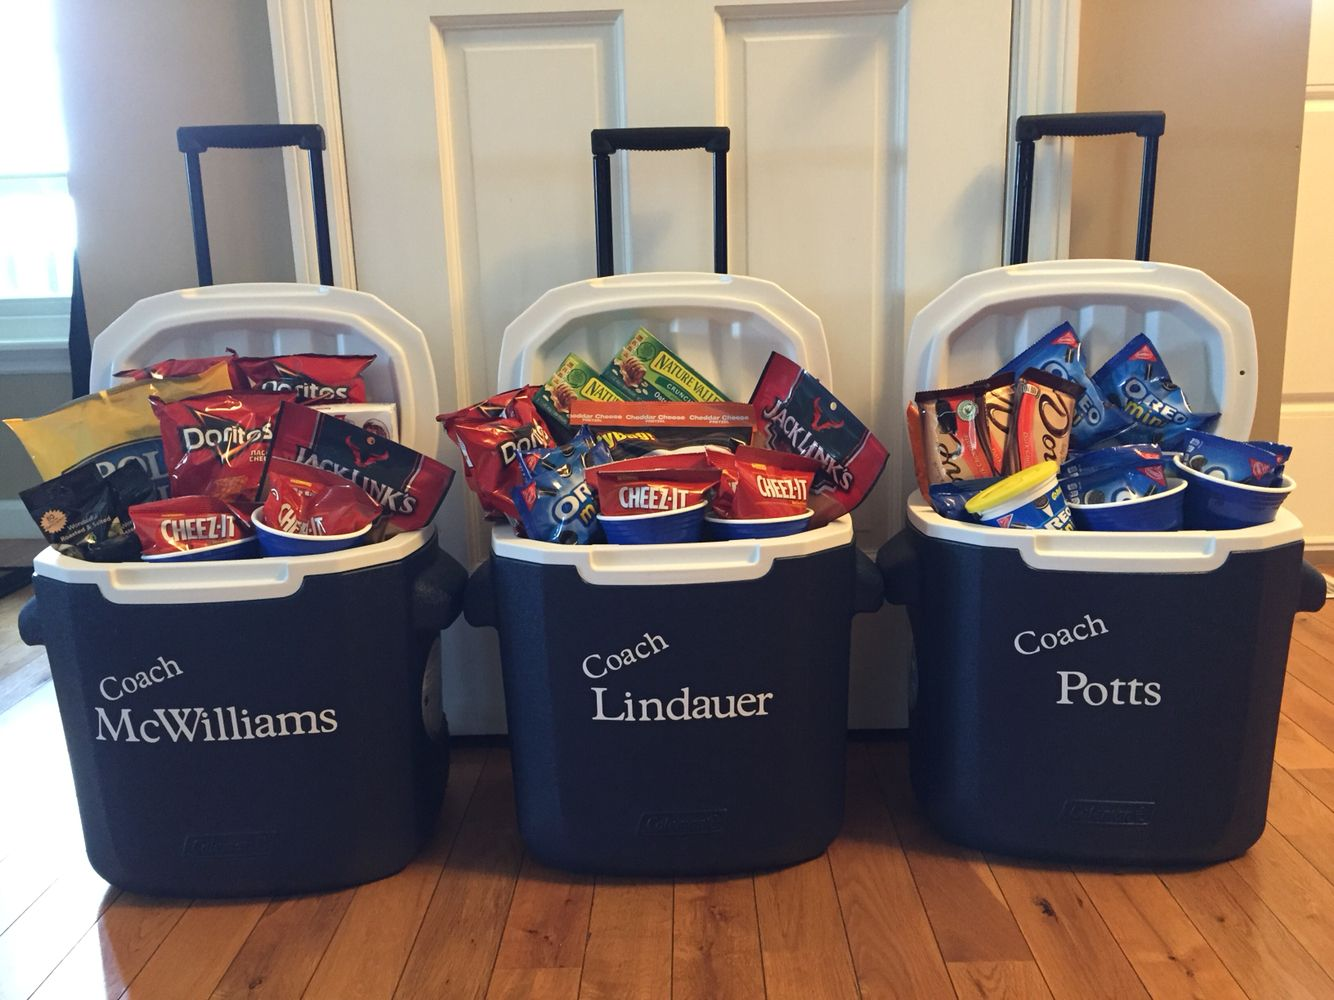 Great gift for our softball coaches. We made sure to get all their favorite snacks!